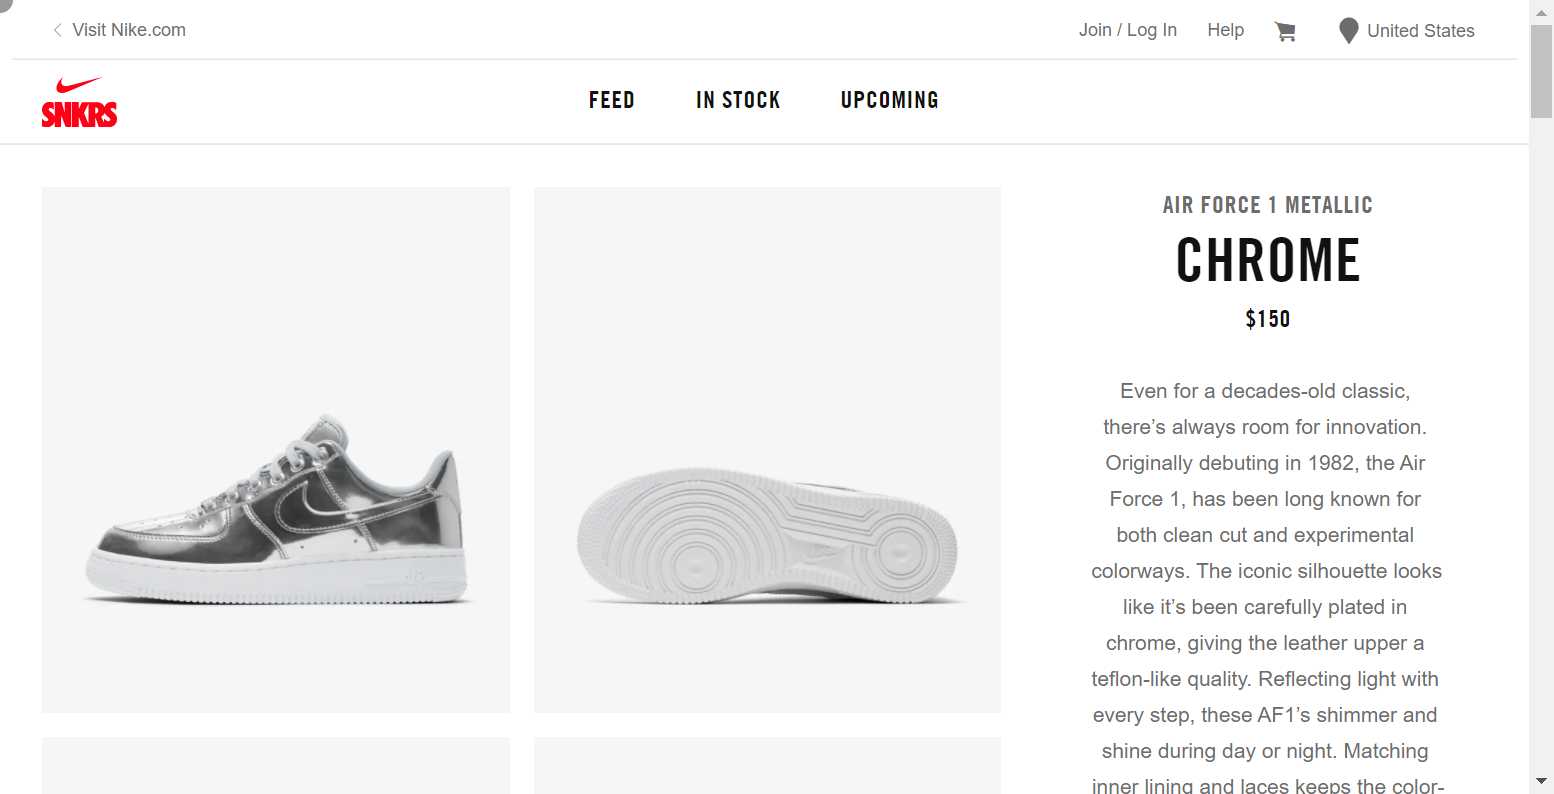 Round 1 - Loading the shoe page